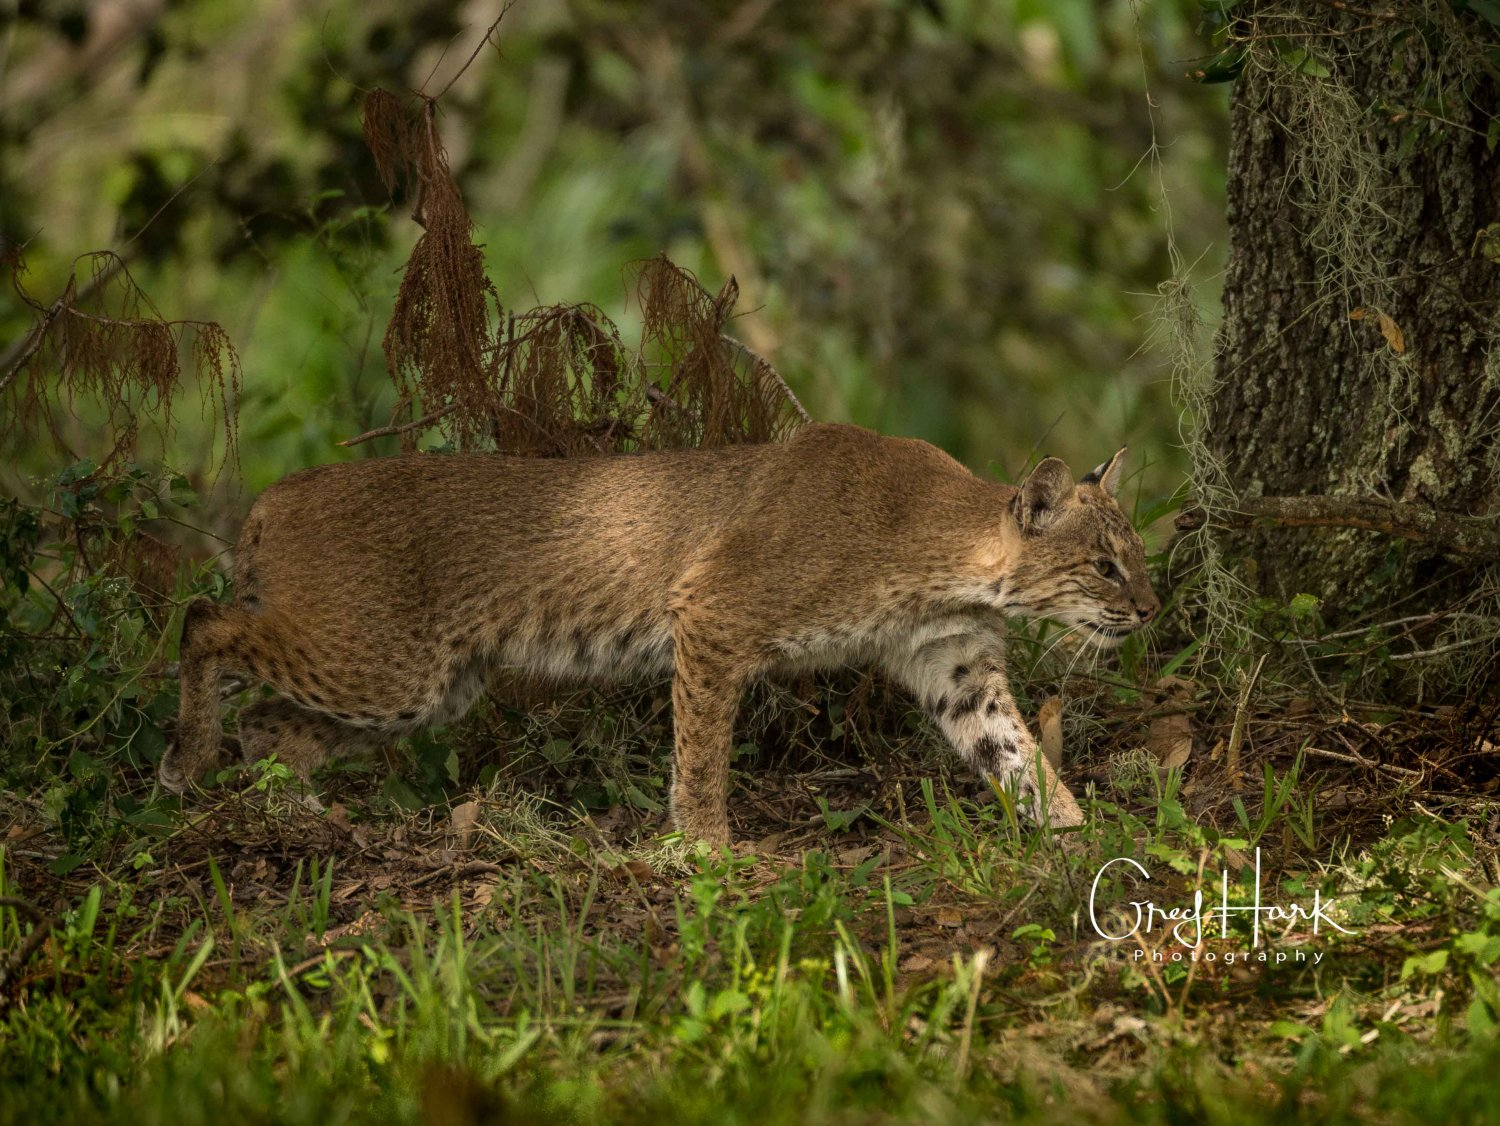 Bobcat, Loxahatchee National Wildlife Refuge Bob Cat,EVERGLADES CITY,Everglades-Loxahatchee-Bob-Cat,HURRICANE,Kayaking,Loxahatchee,Sun Testing,flowers,sun,